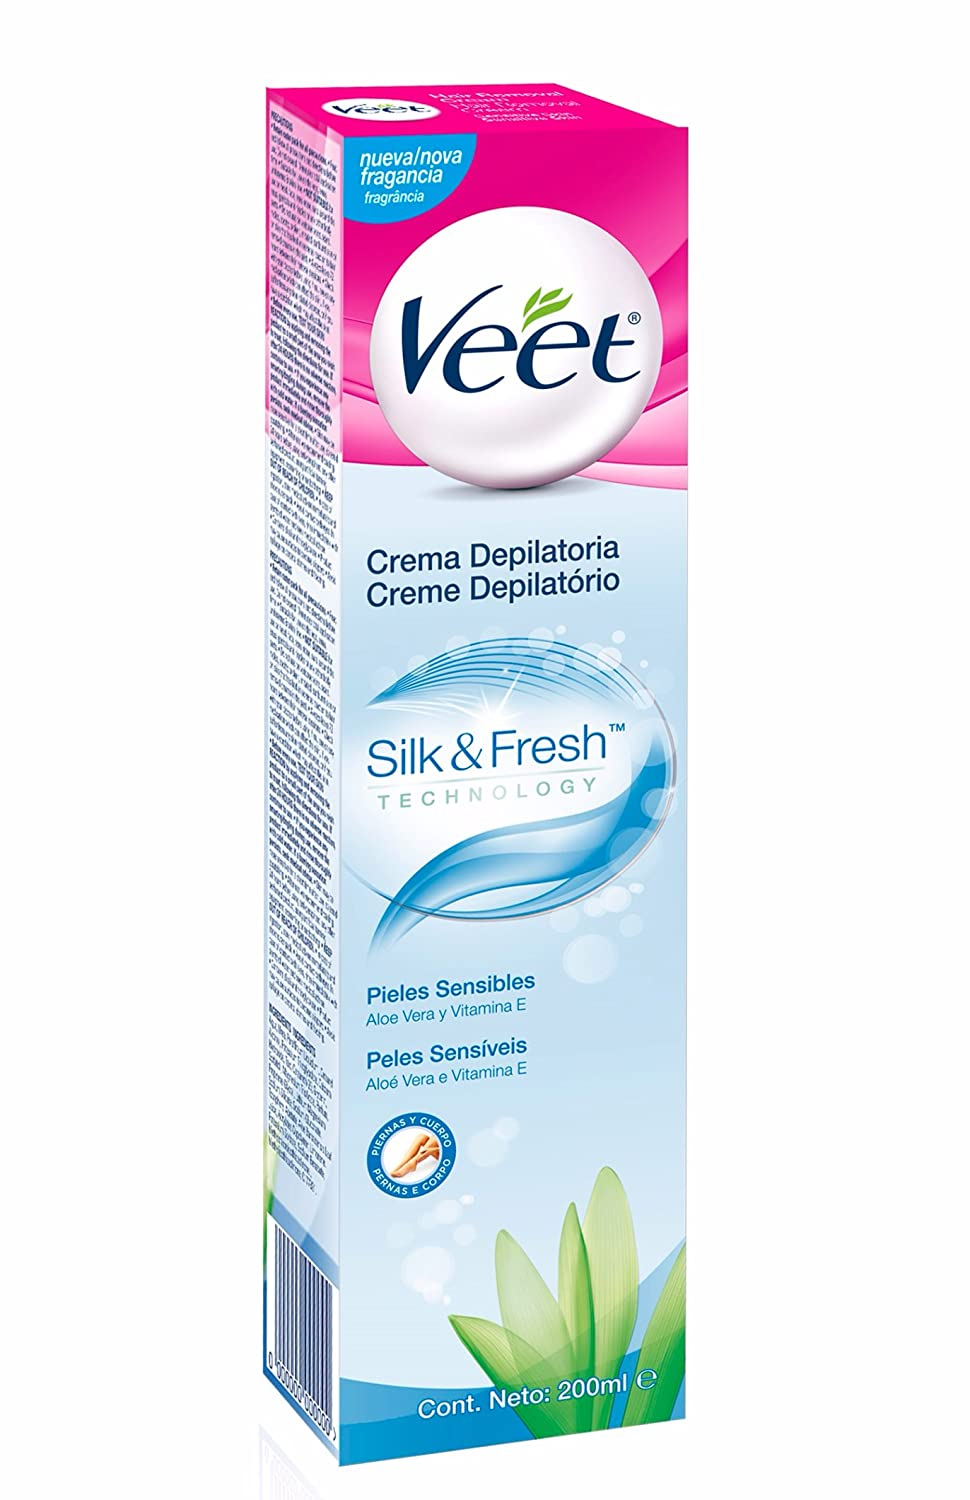 Veet Crema Depilatoria Pieles Sensibles - 20 cl: Amazon.es: Amazon Pantry